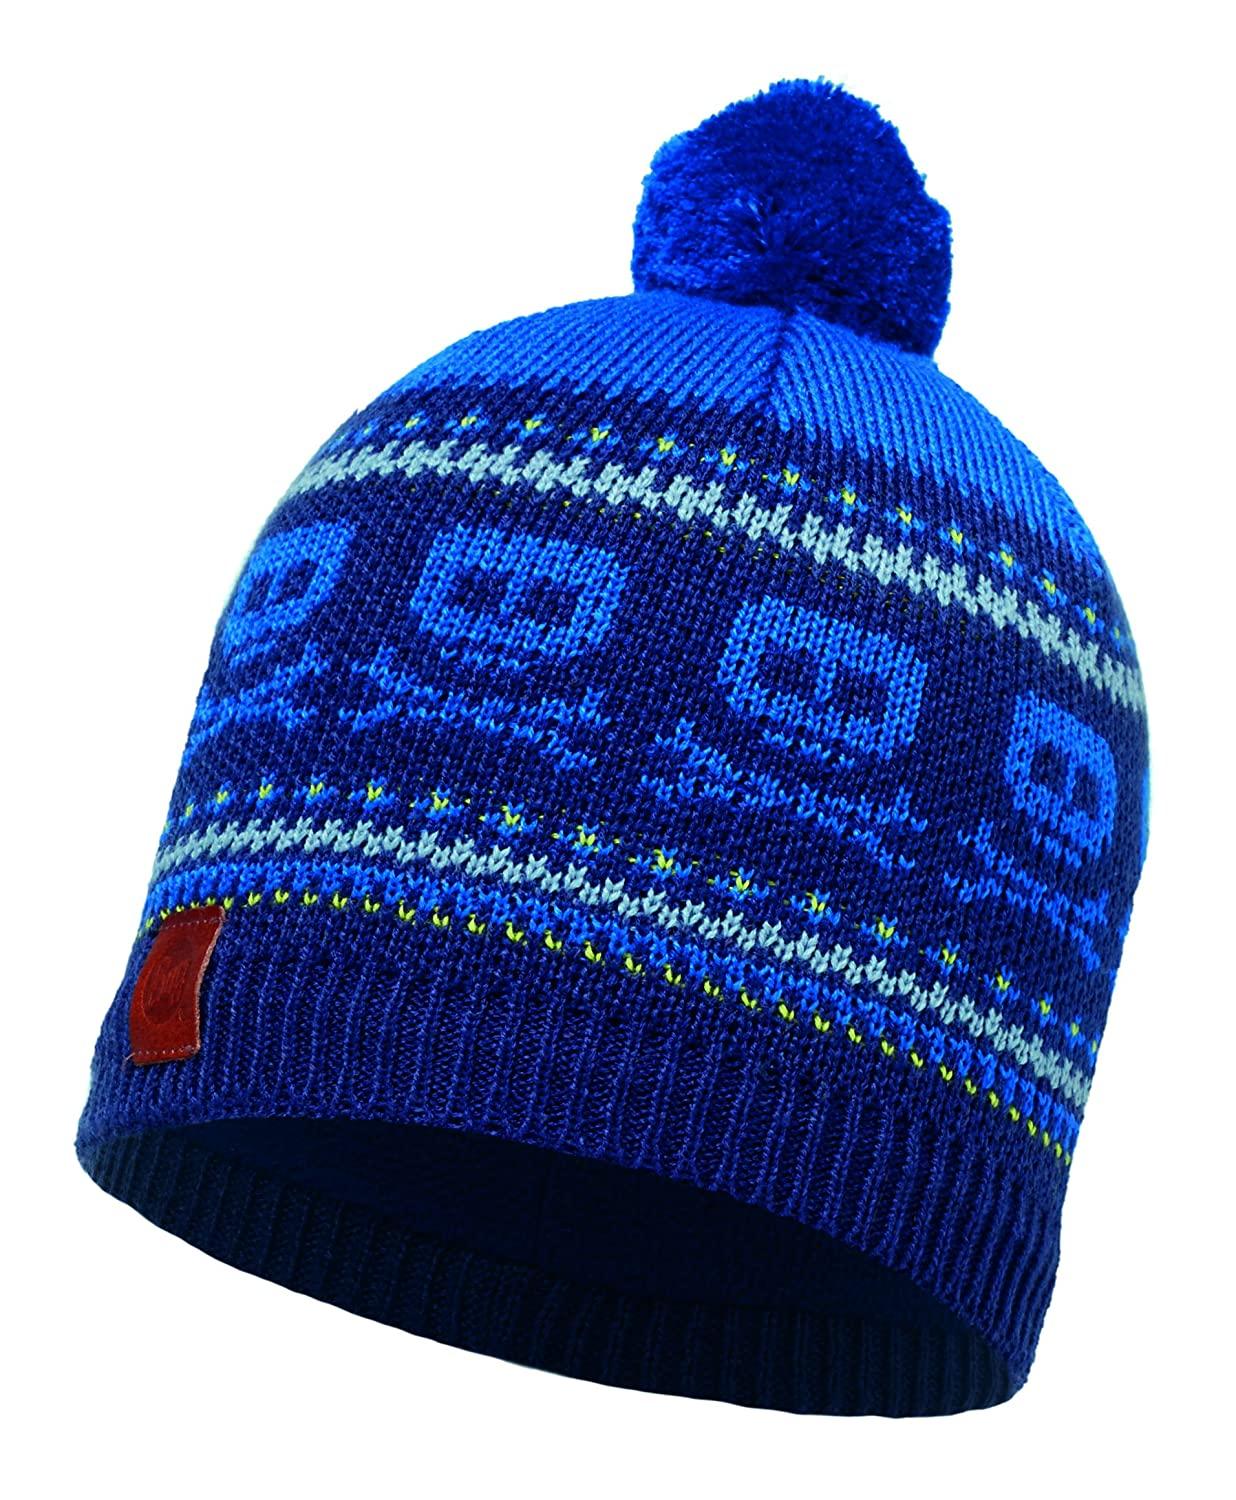 Buff original Gorro de Tricot, Talla Única ,Multicolor Original Buff 113527.753.10.00